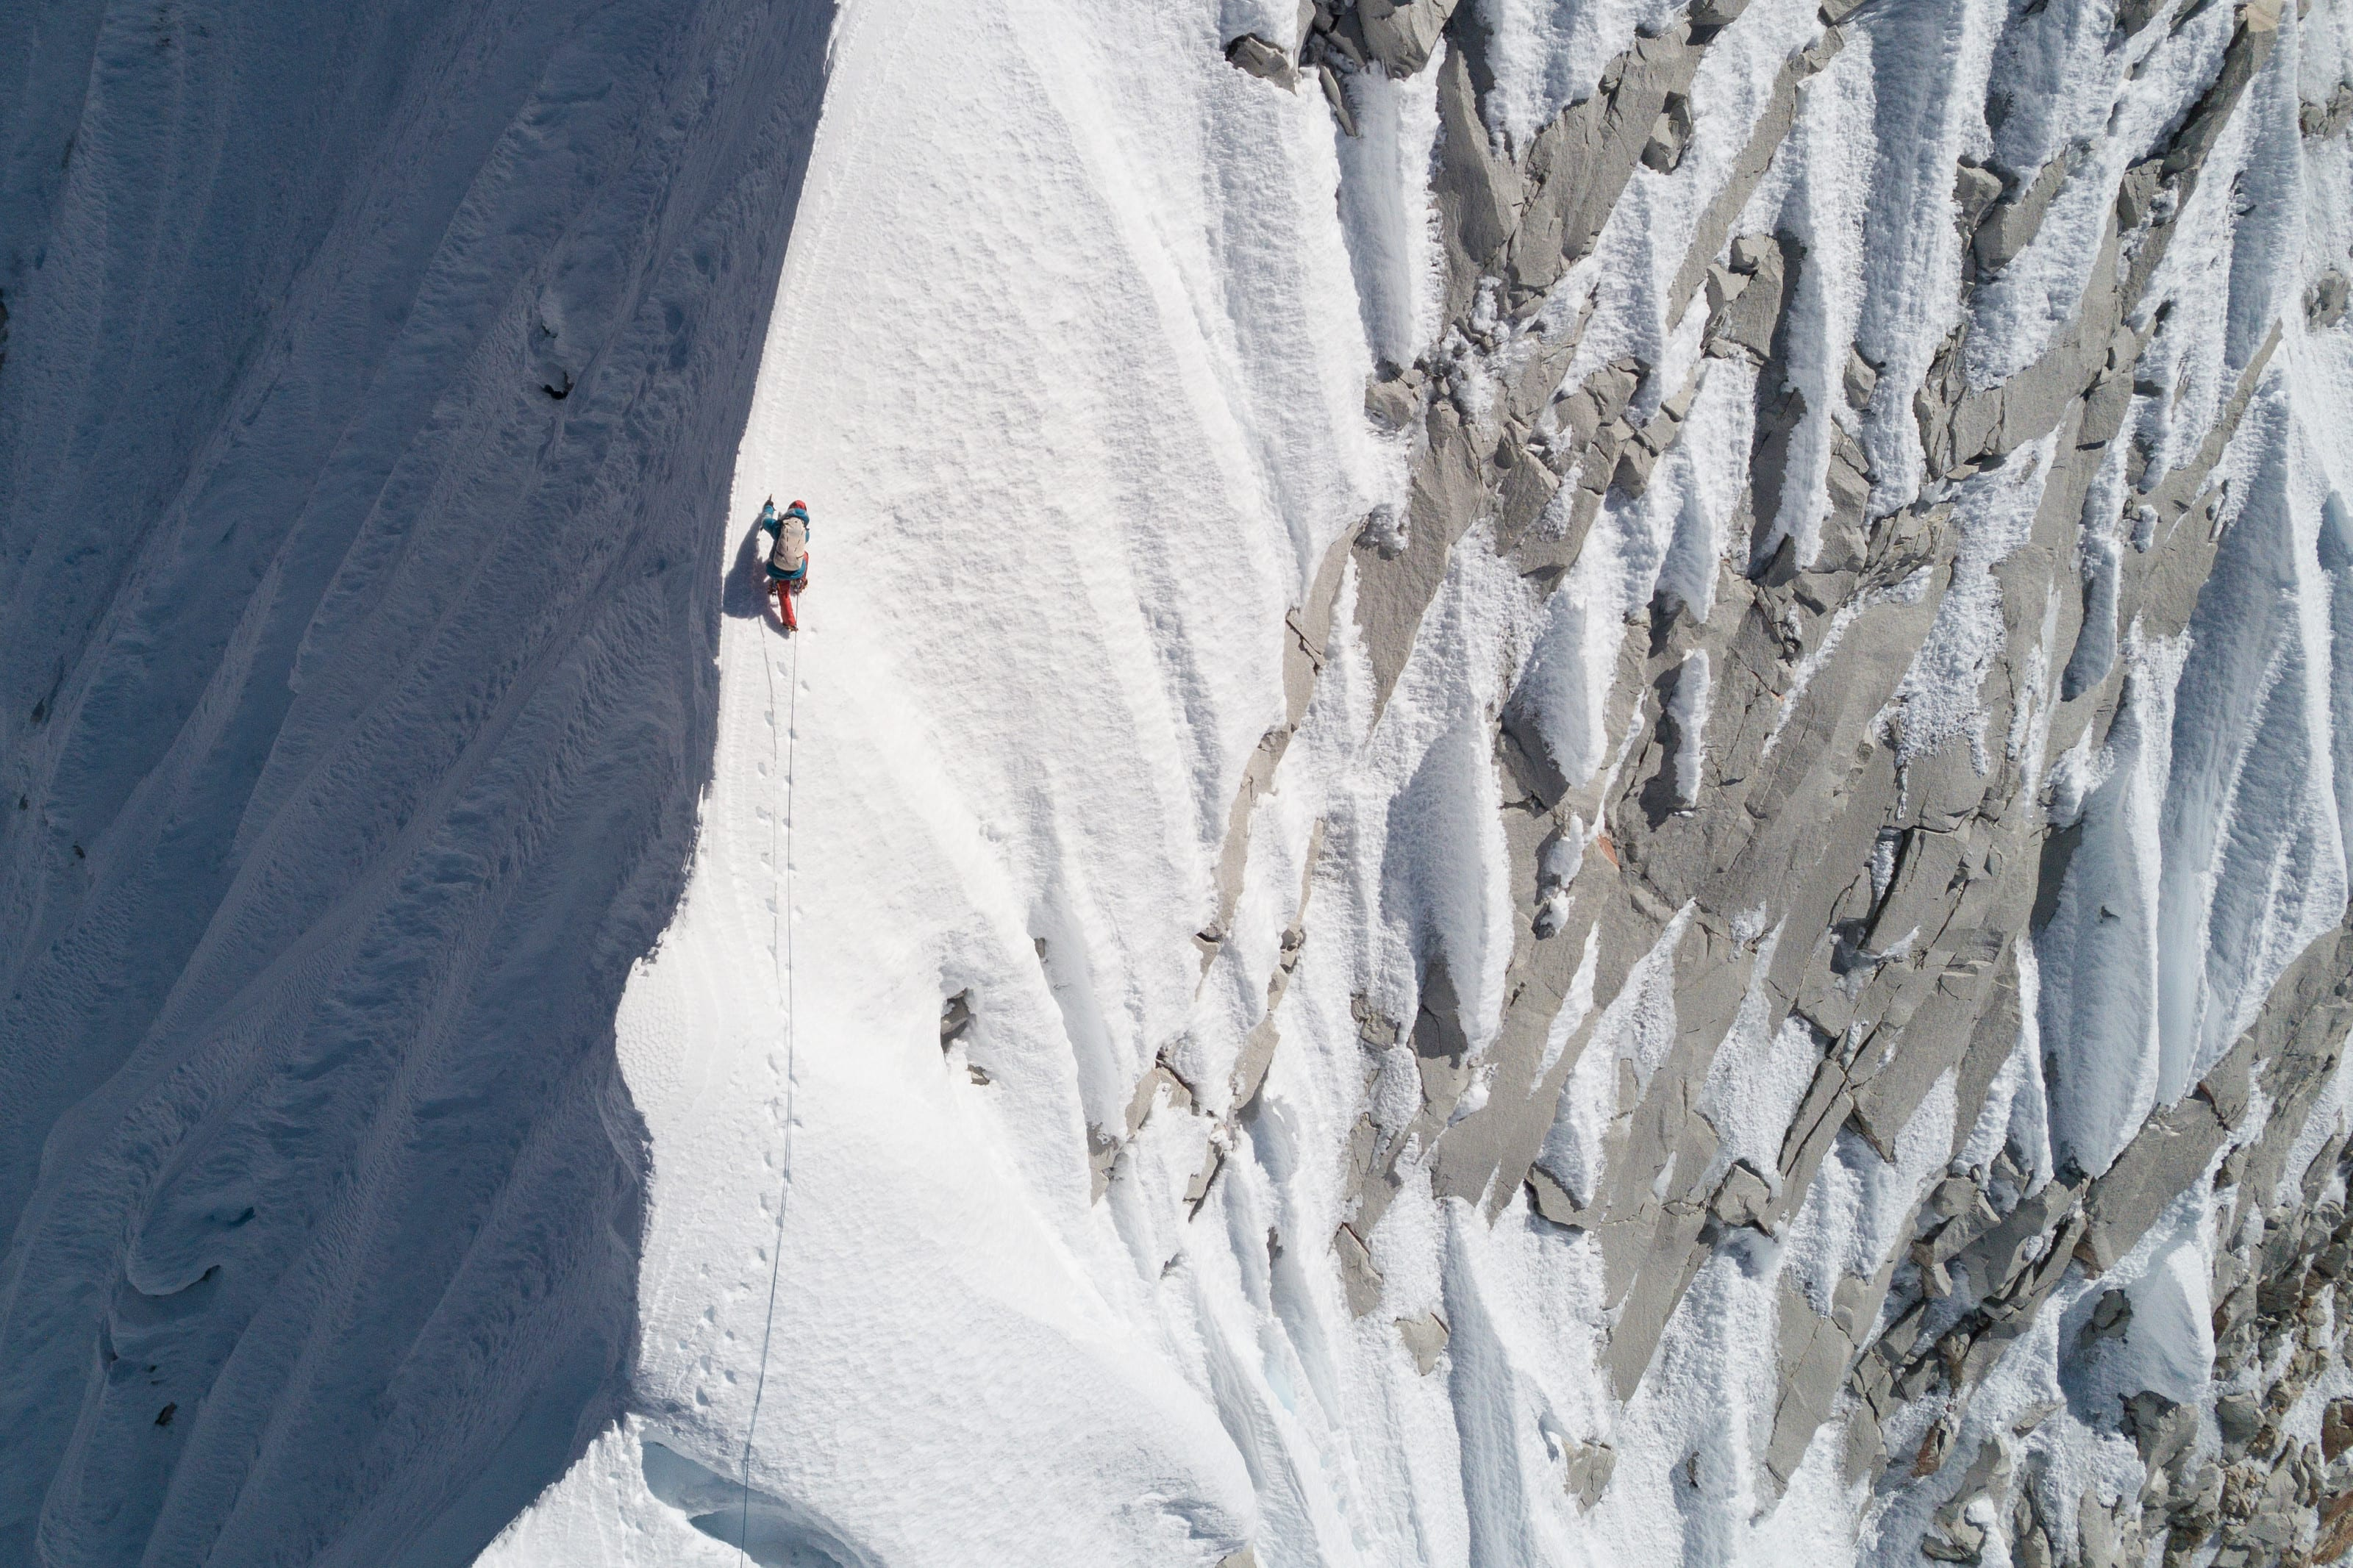 Interview: David Lama on His Lunag Ri Solo - Rock and Ice